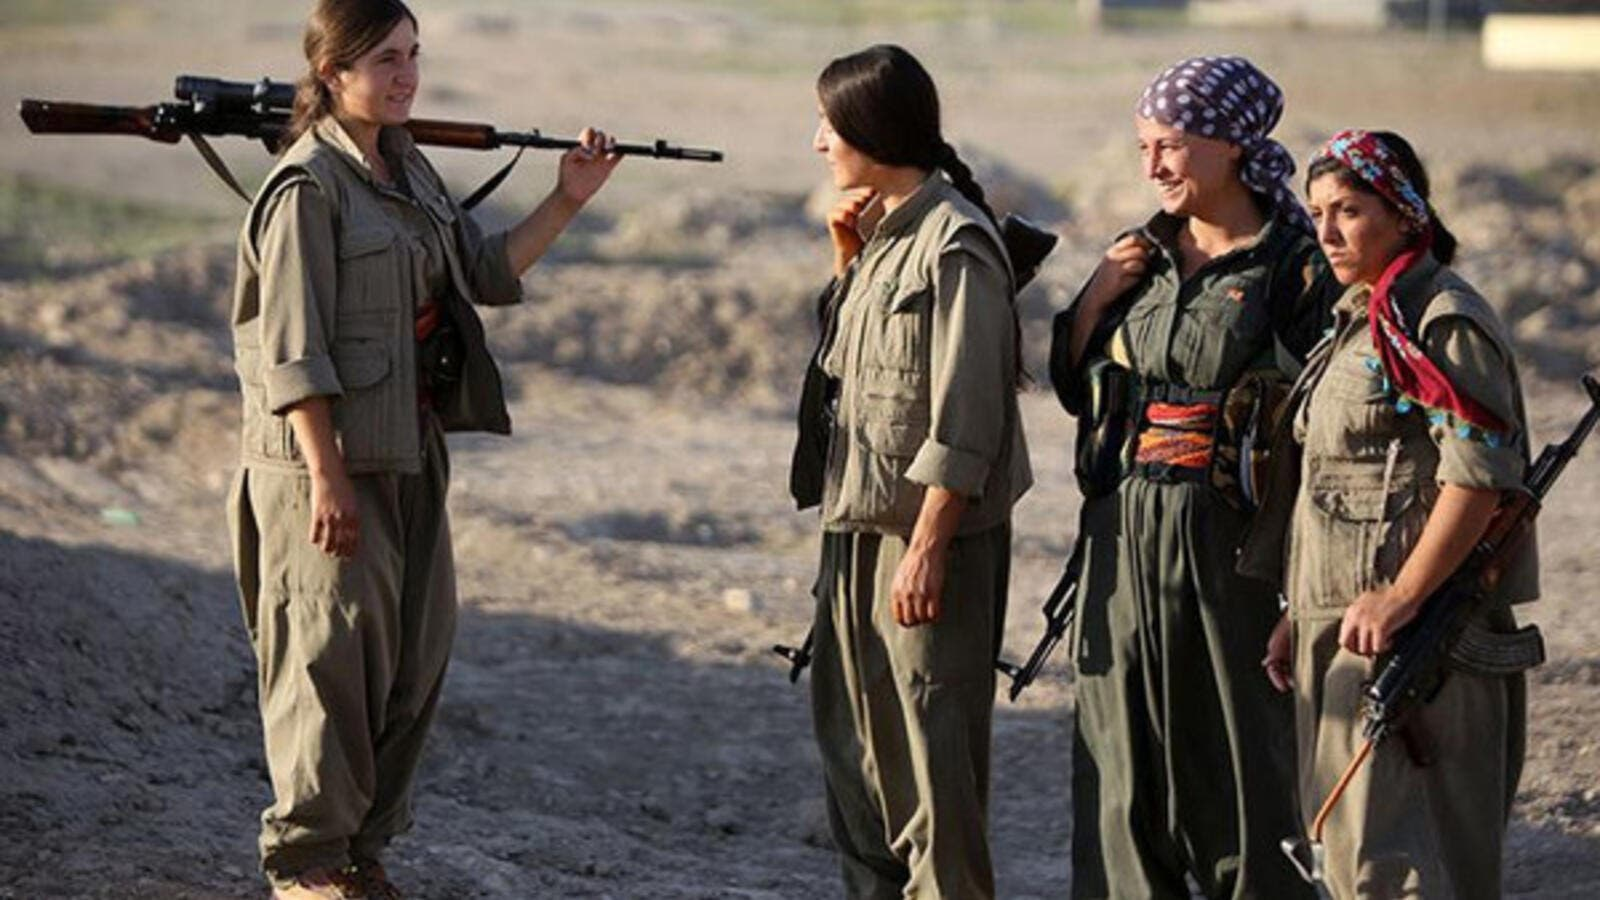 One female soldier claims the Daesh targets women on and off the battle field. (AFP/File)